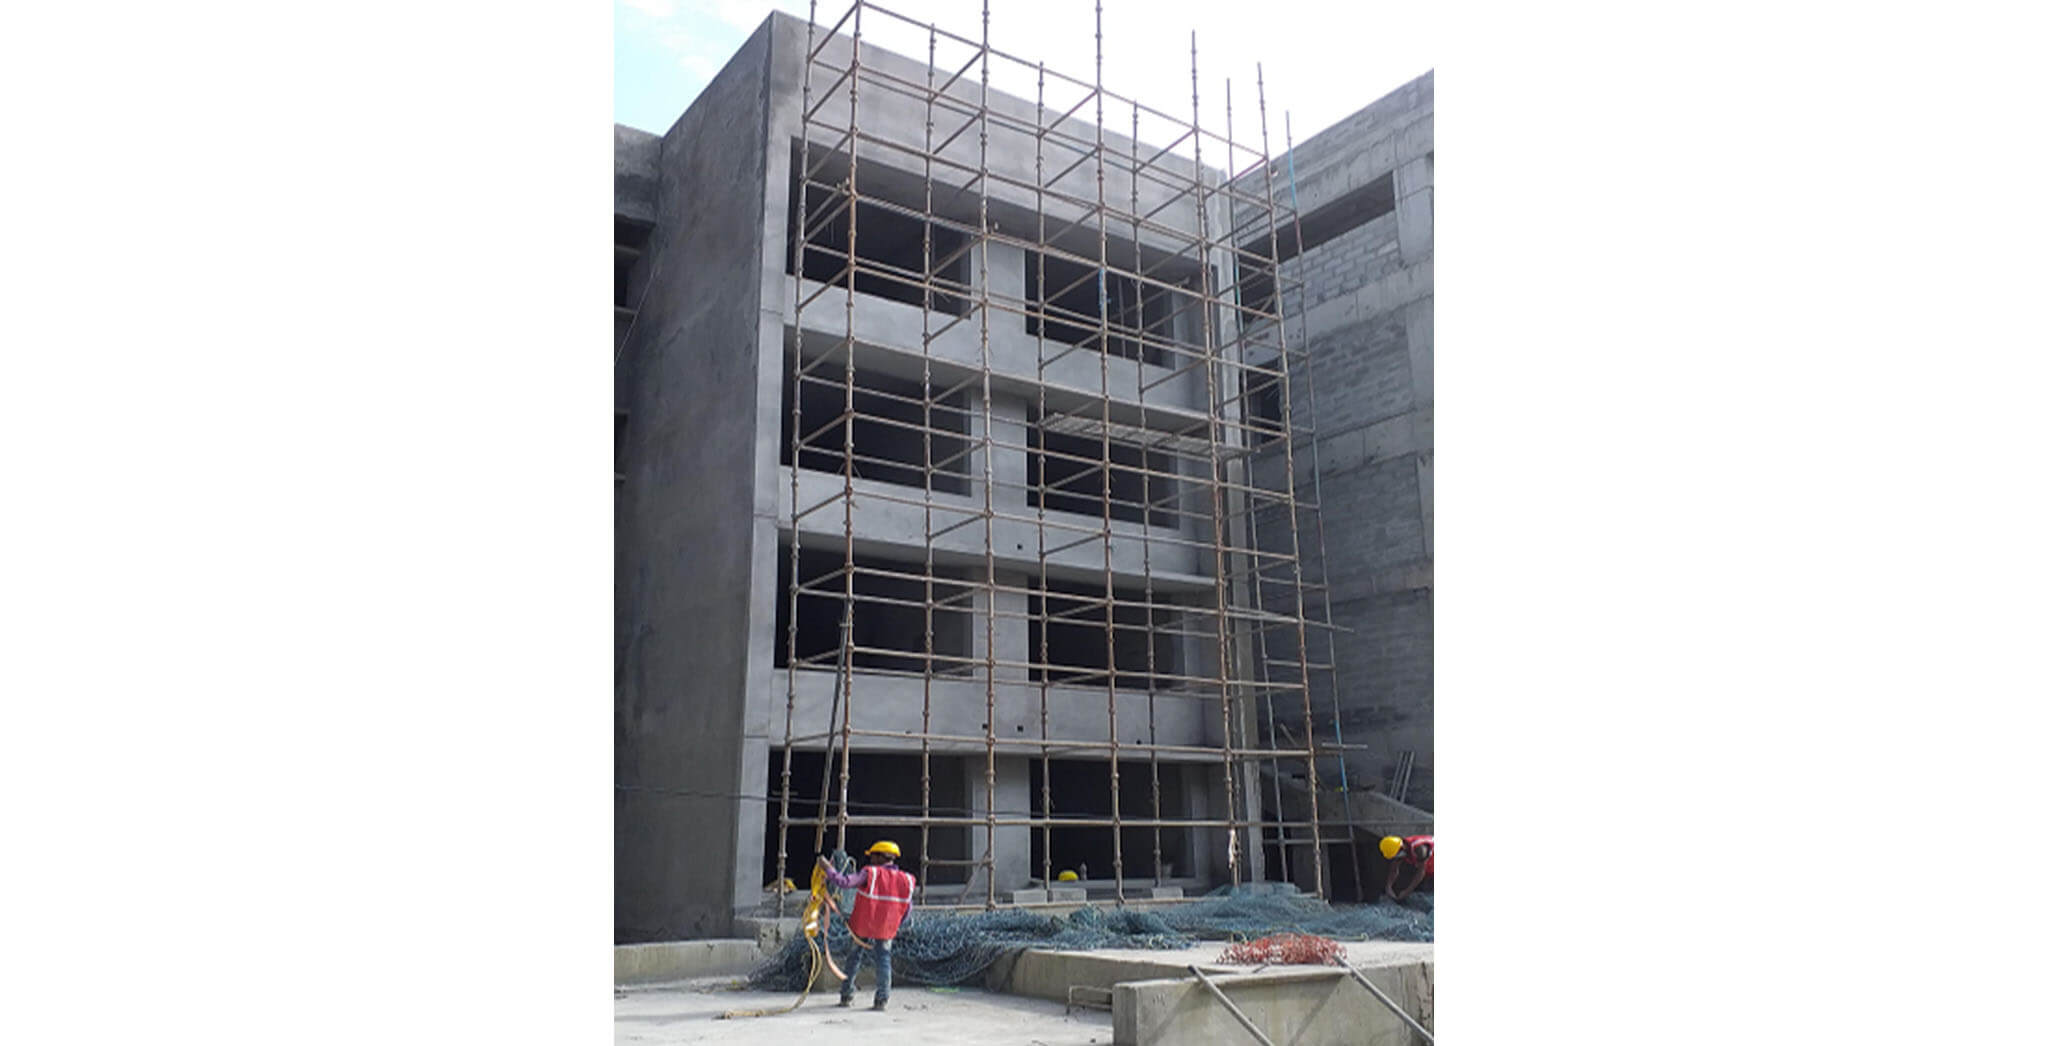 Oct 2020 - North side view: N Block—1BHK flats external plastering work completed